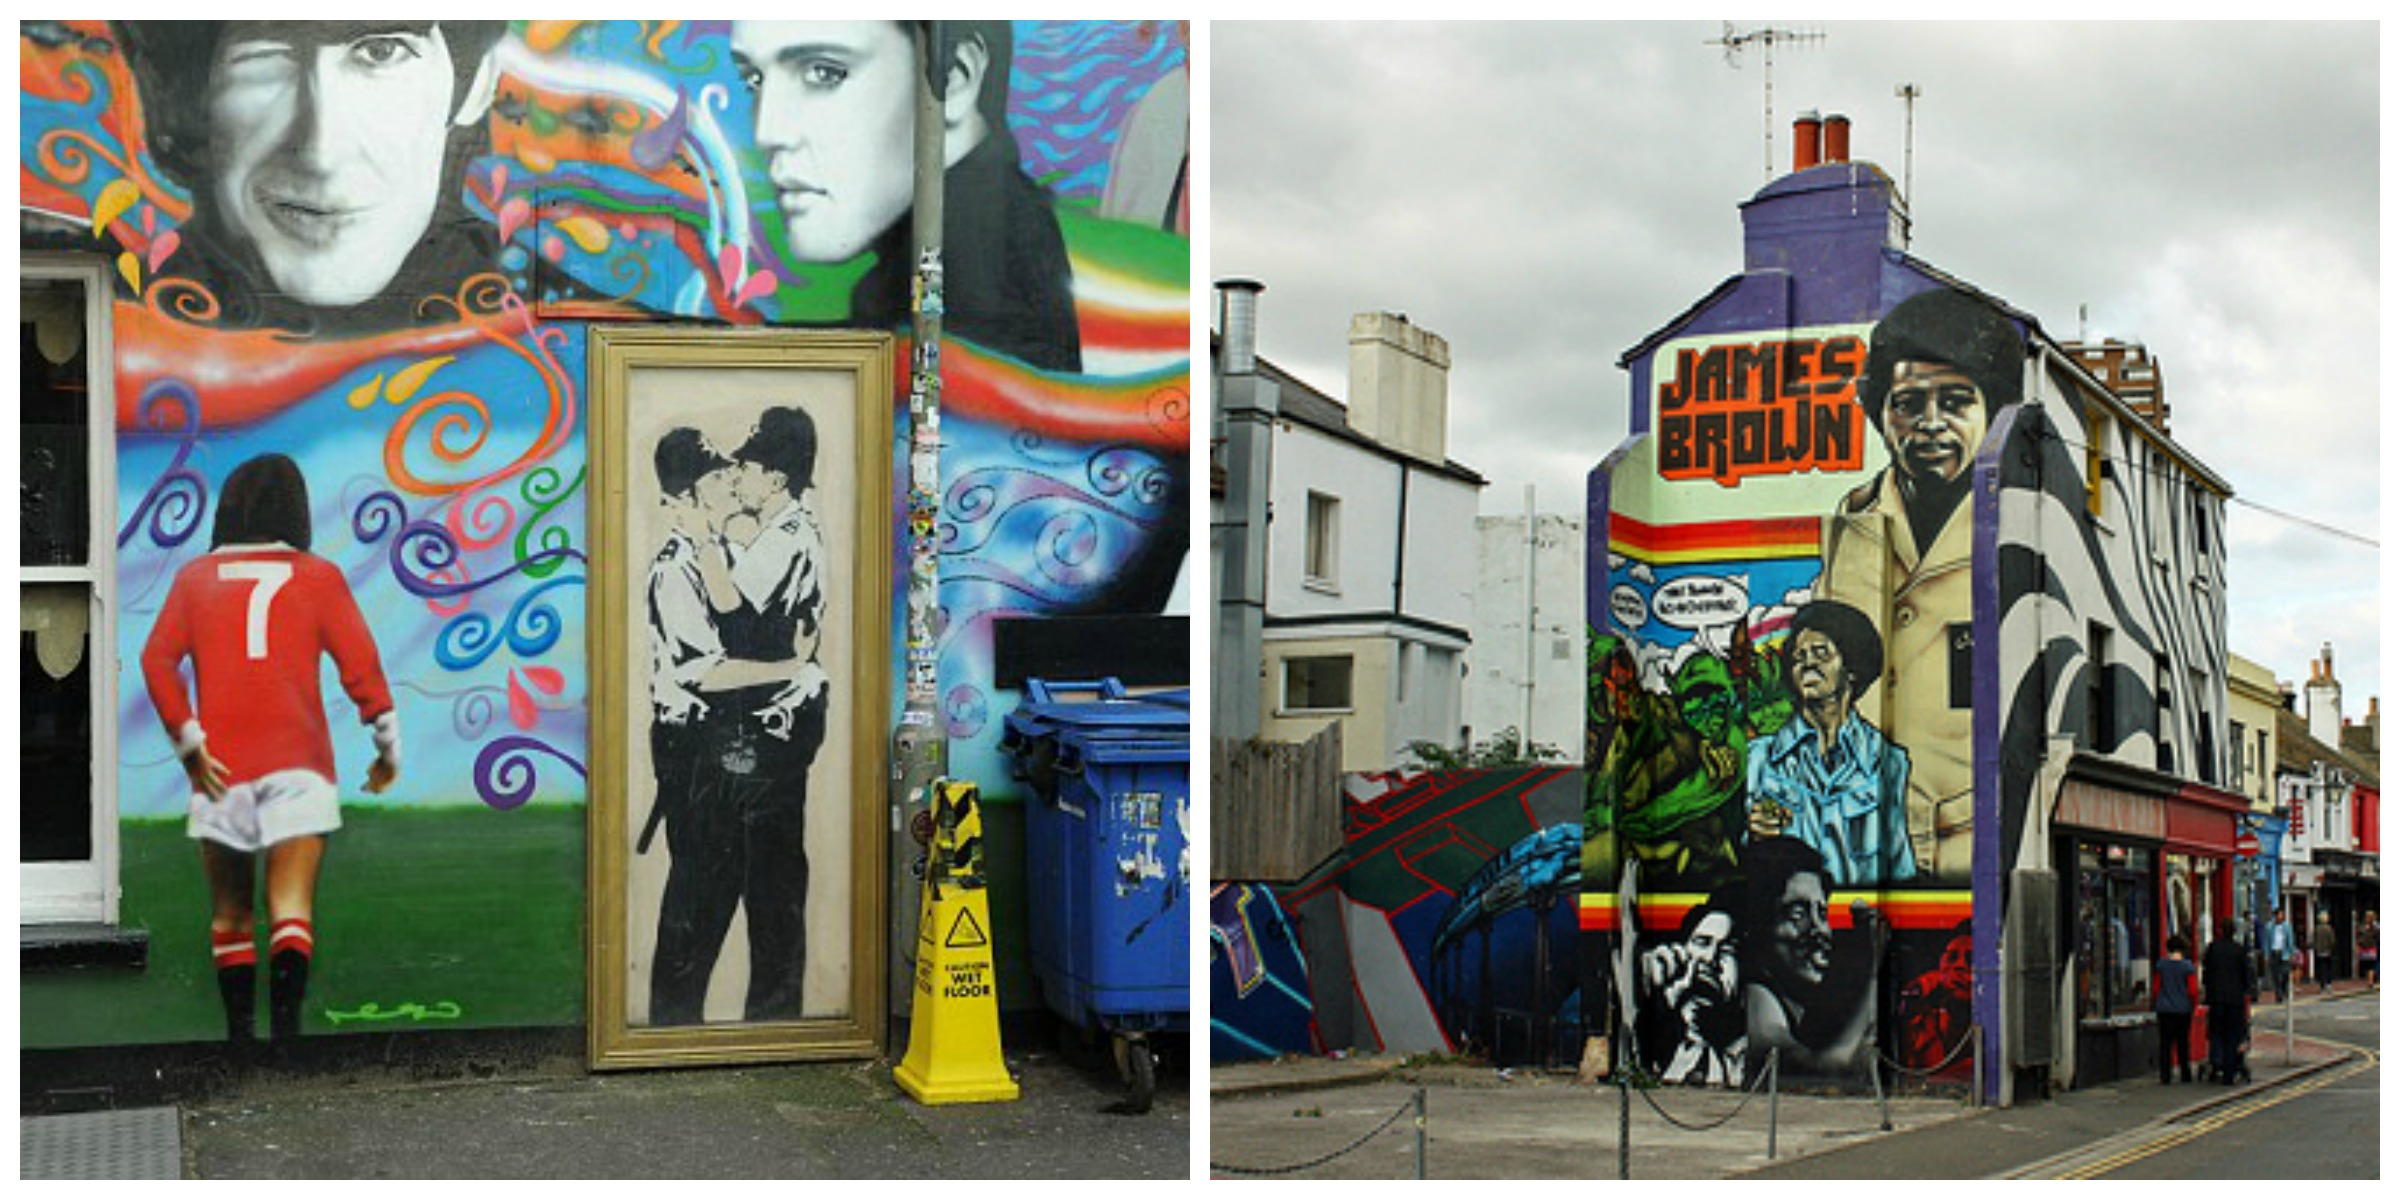 Brighton Graffiti - Visit Brighton